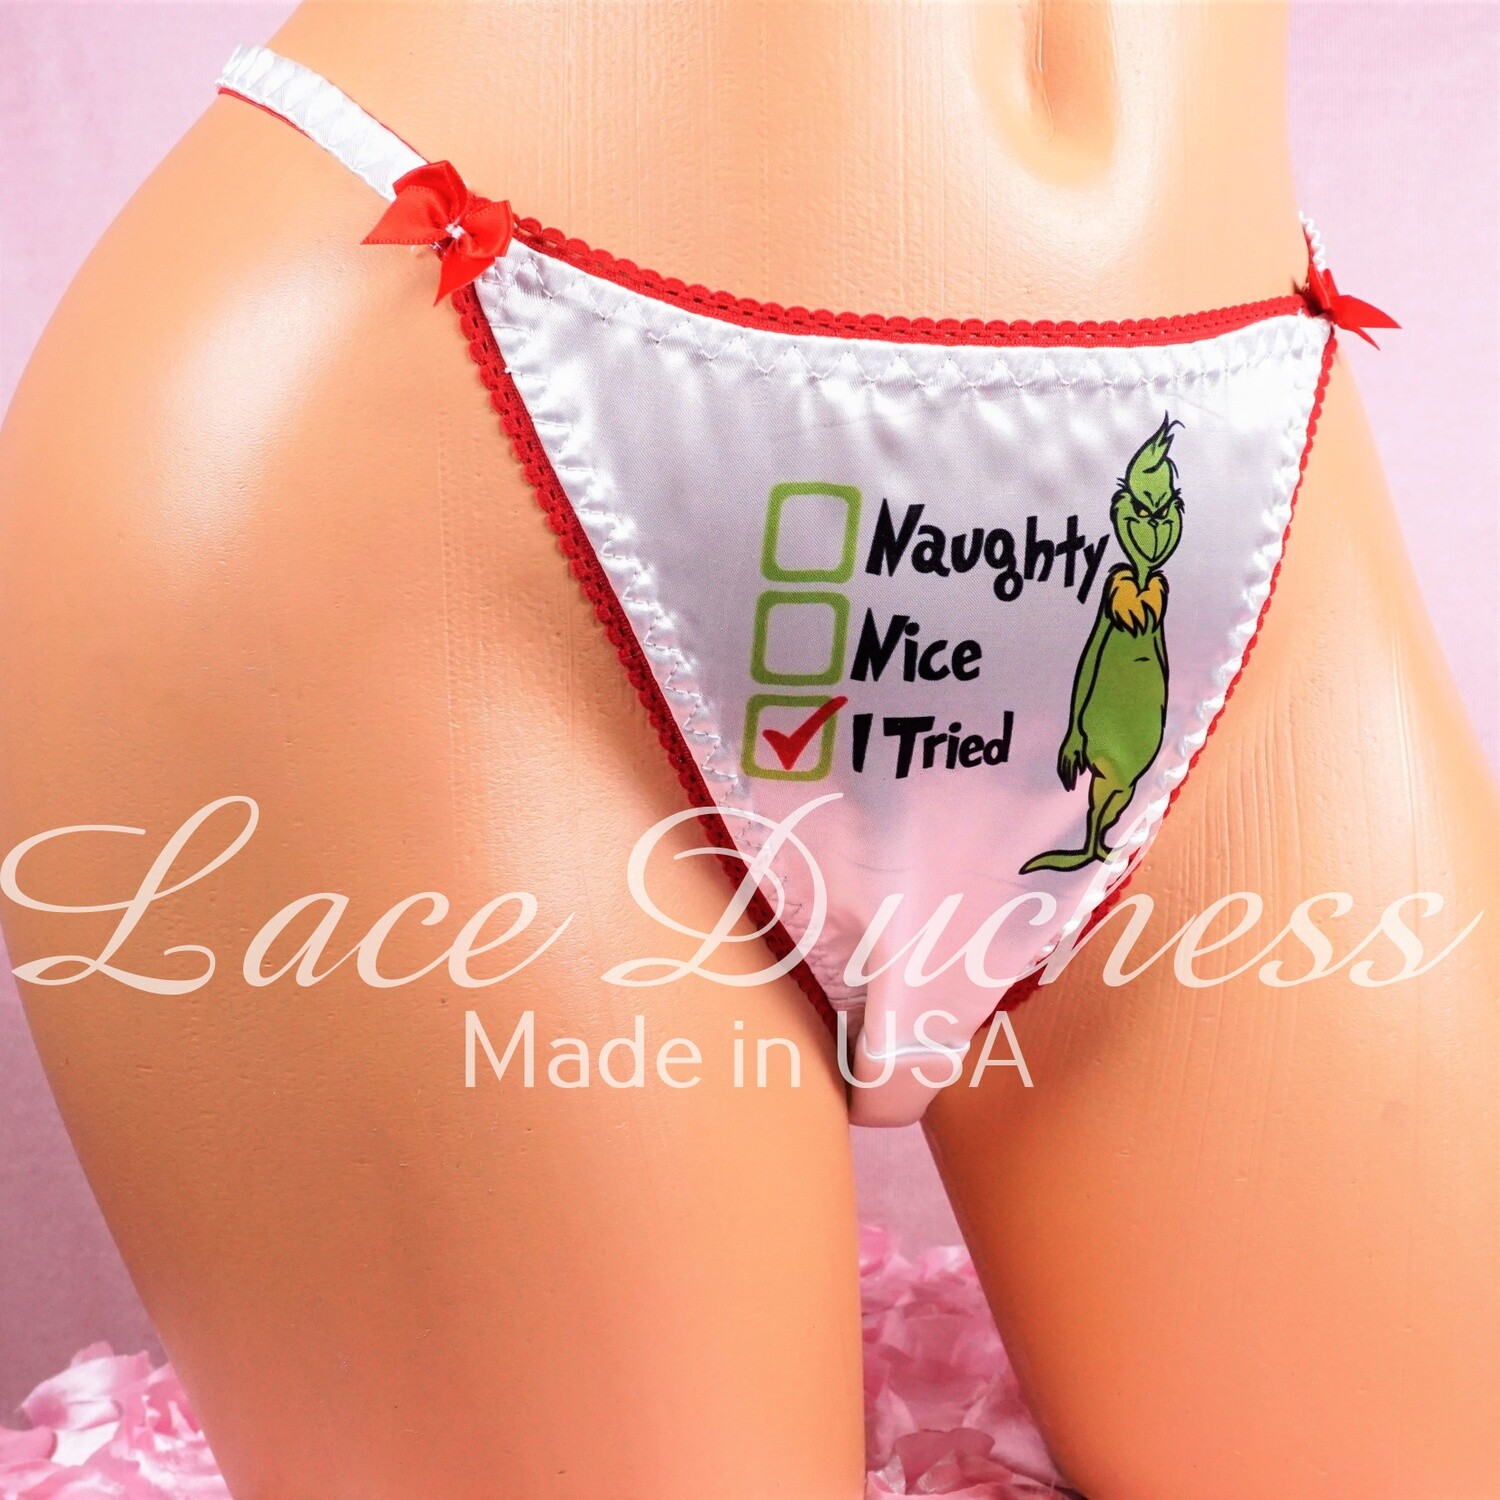 Lace Duchess Classic 80's cut Christmas Grouch Naughty And Nice Checklist Character movie print satin wet look panties sz 5 6 7 8